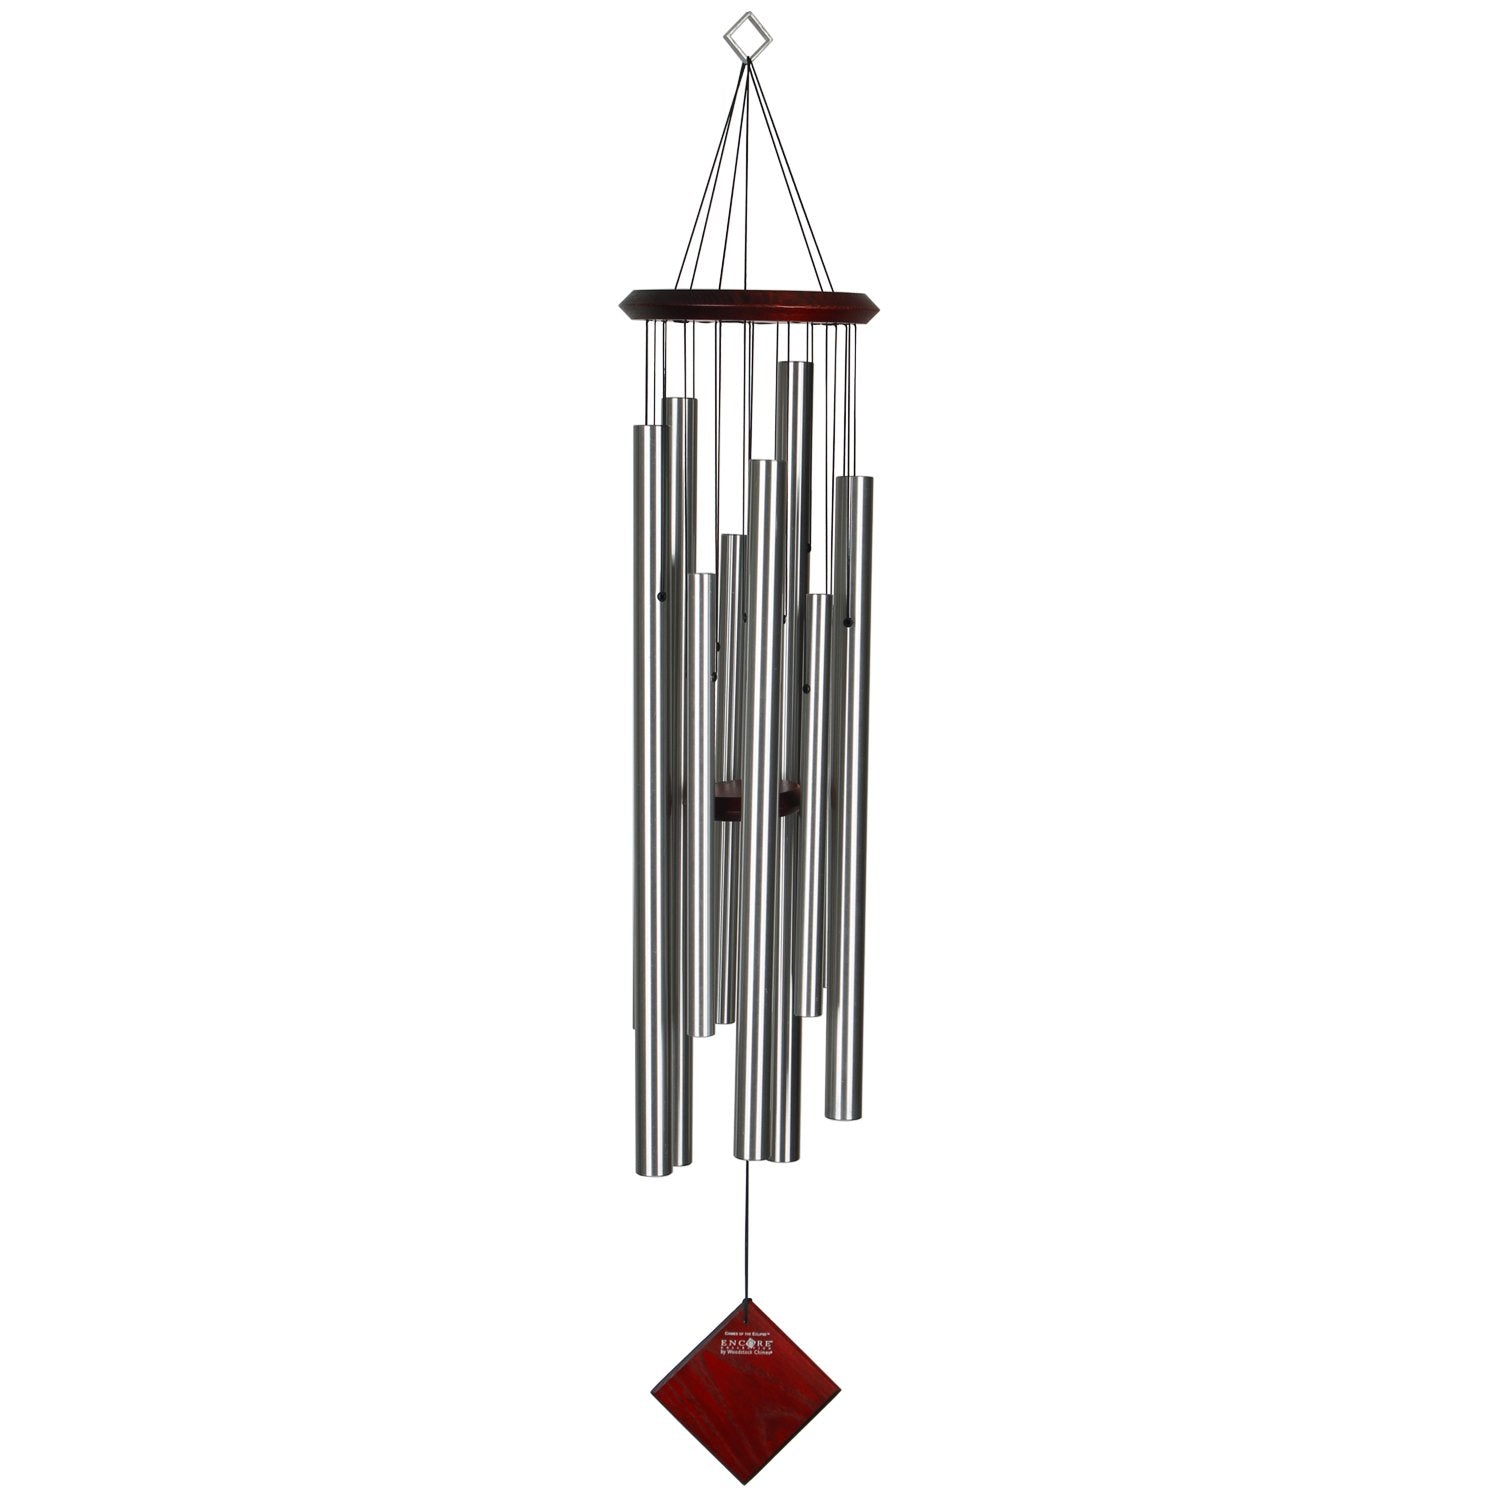 Encore Chimes of The Eclipse - Silver full product image